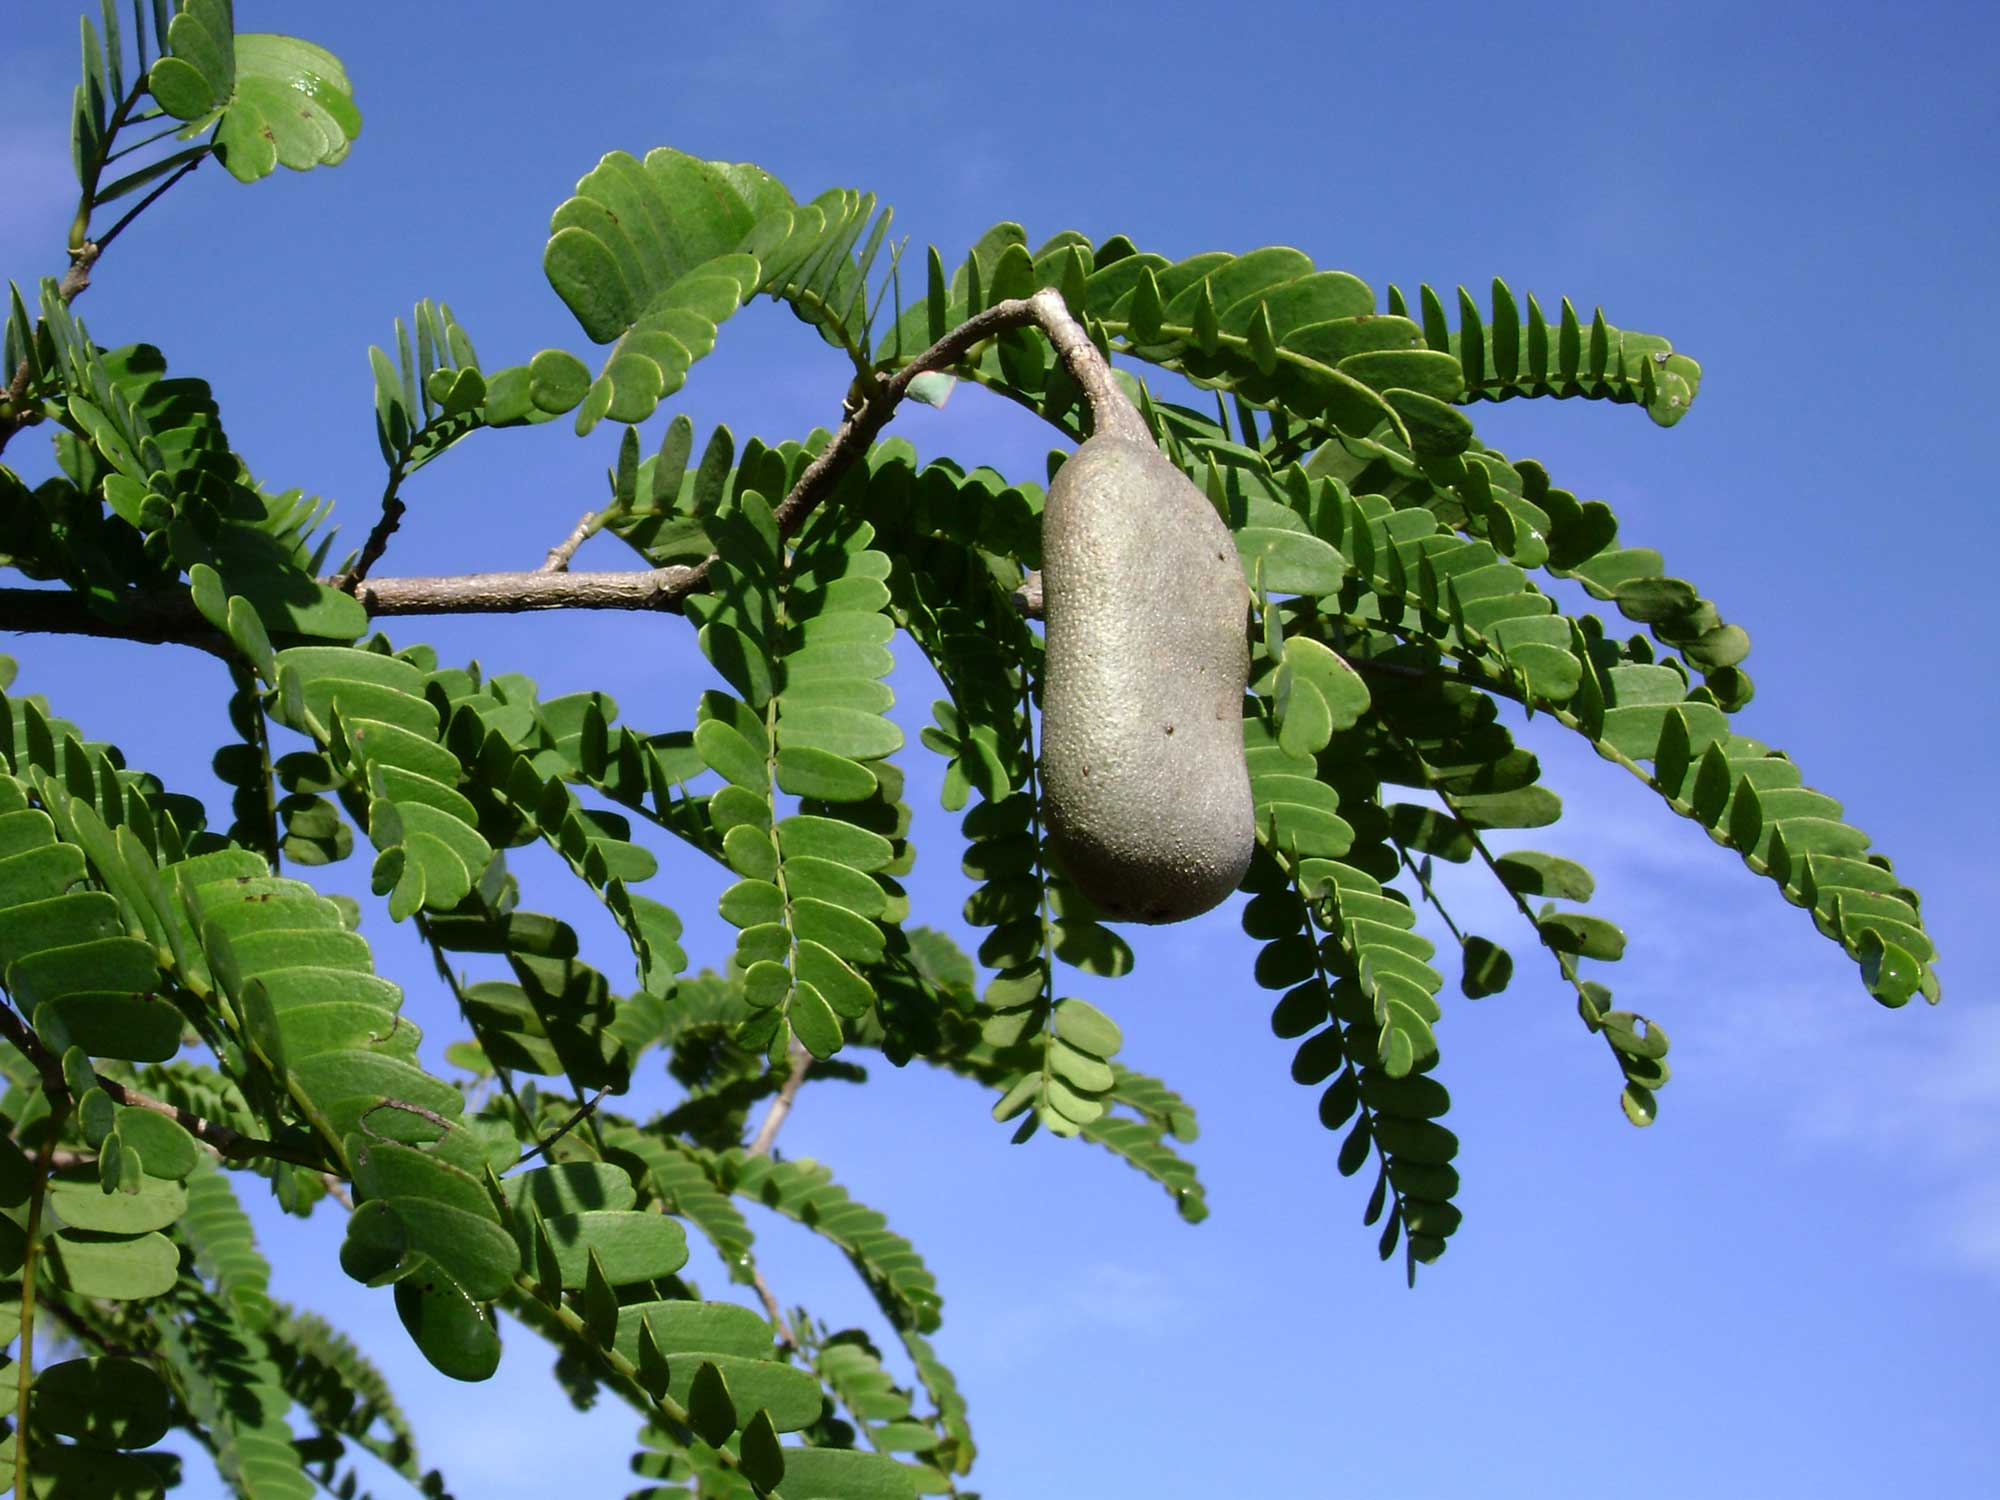 https://i0.wp.com/upload.wikimedia.org/wikipedia/commons/b/b5/Tamarindus_indica%2C_leaves%2C_pod.jpg